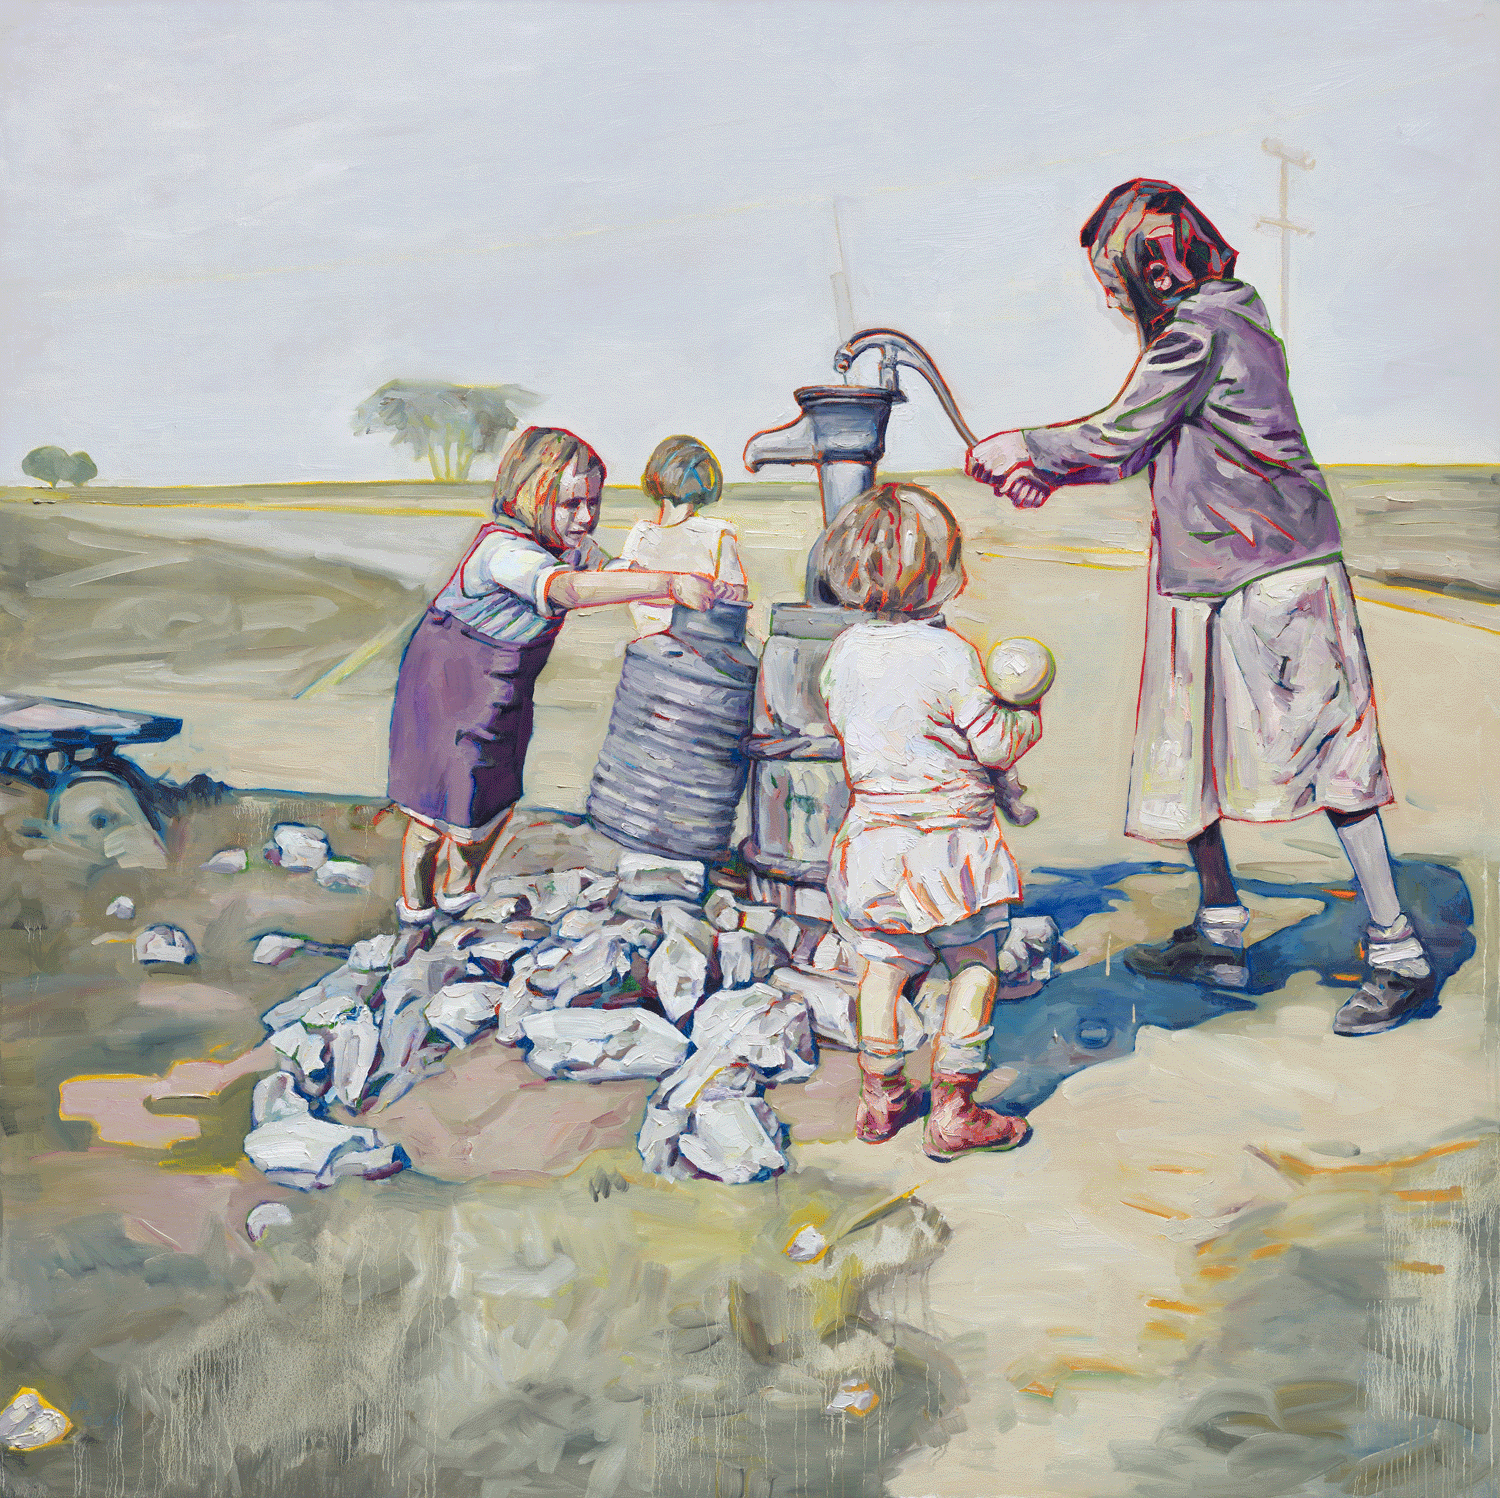 Fetching Water I, 2016, Oil on canvas,  90 x 80 inches